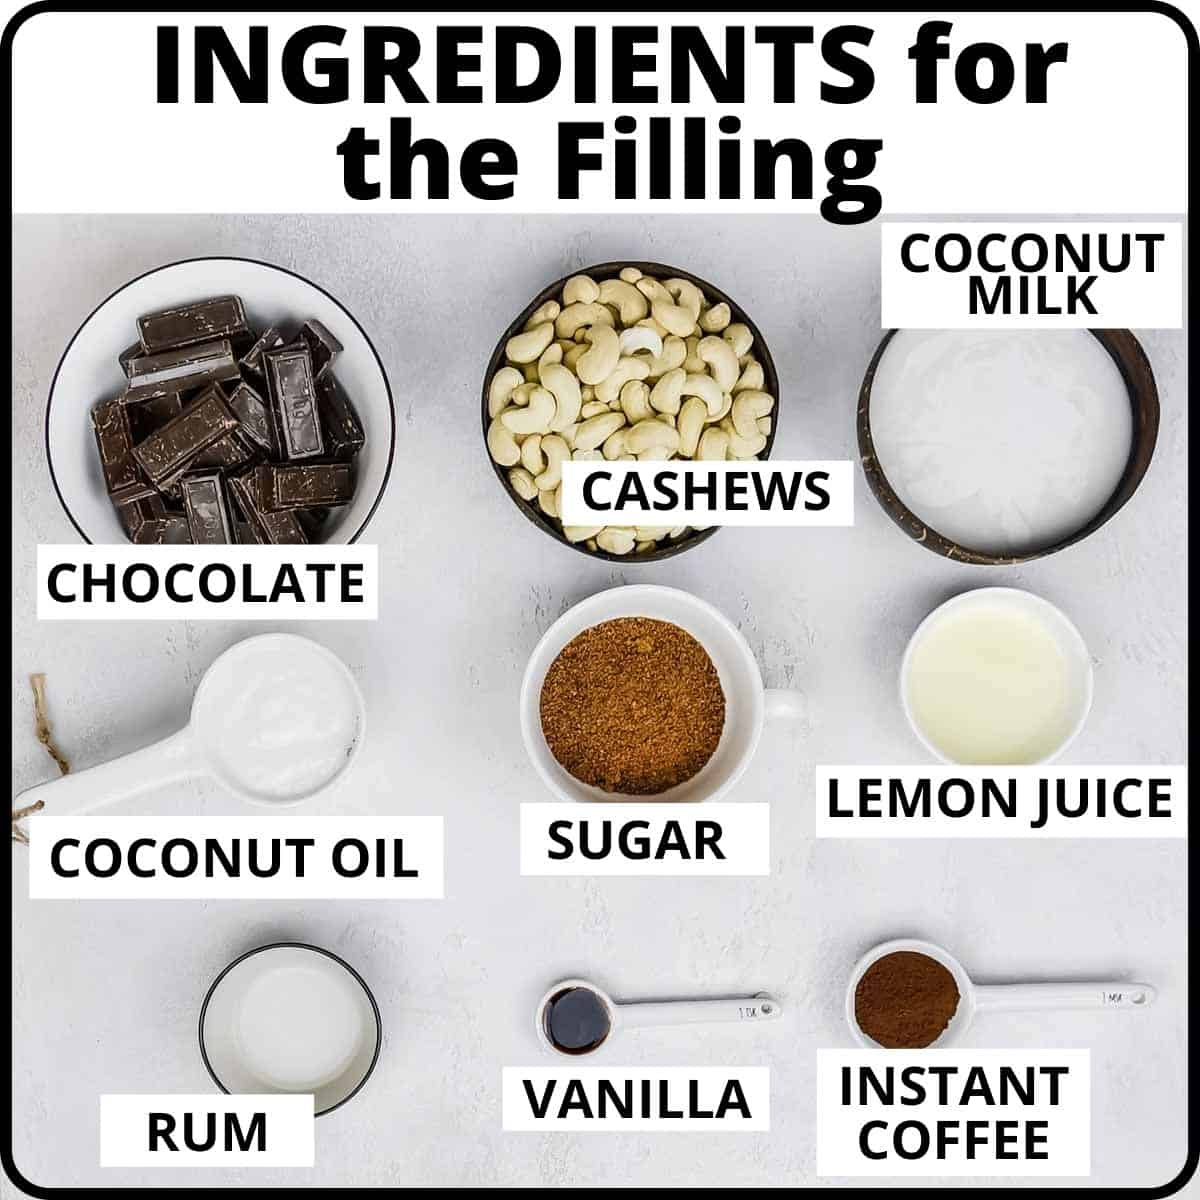 Ingredients for the filling of the chocolate cheesecake placed on a white surface.